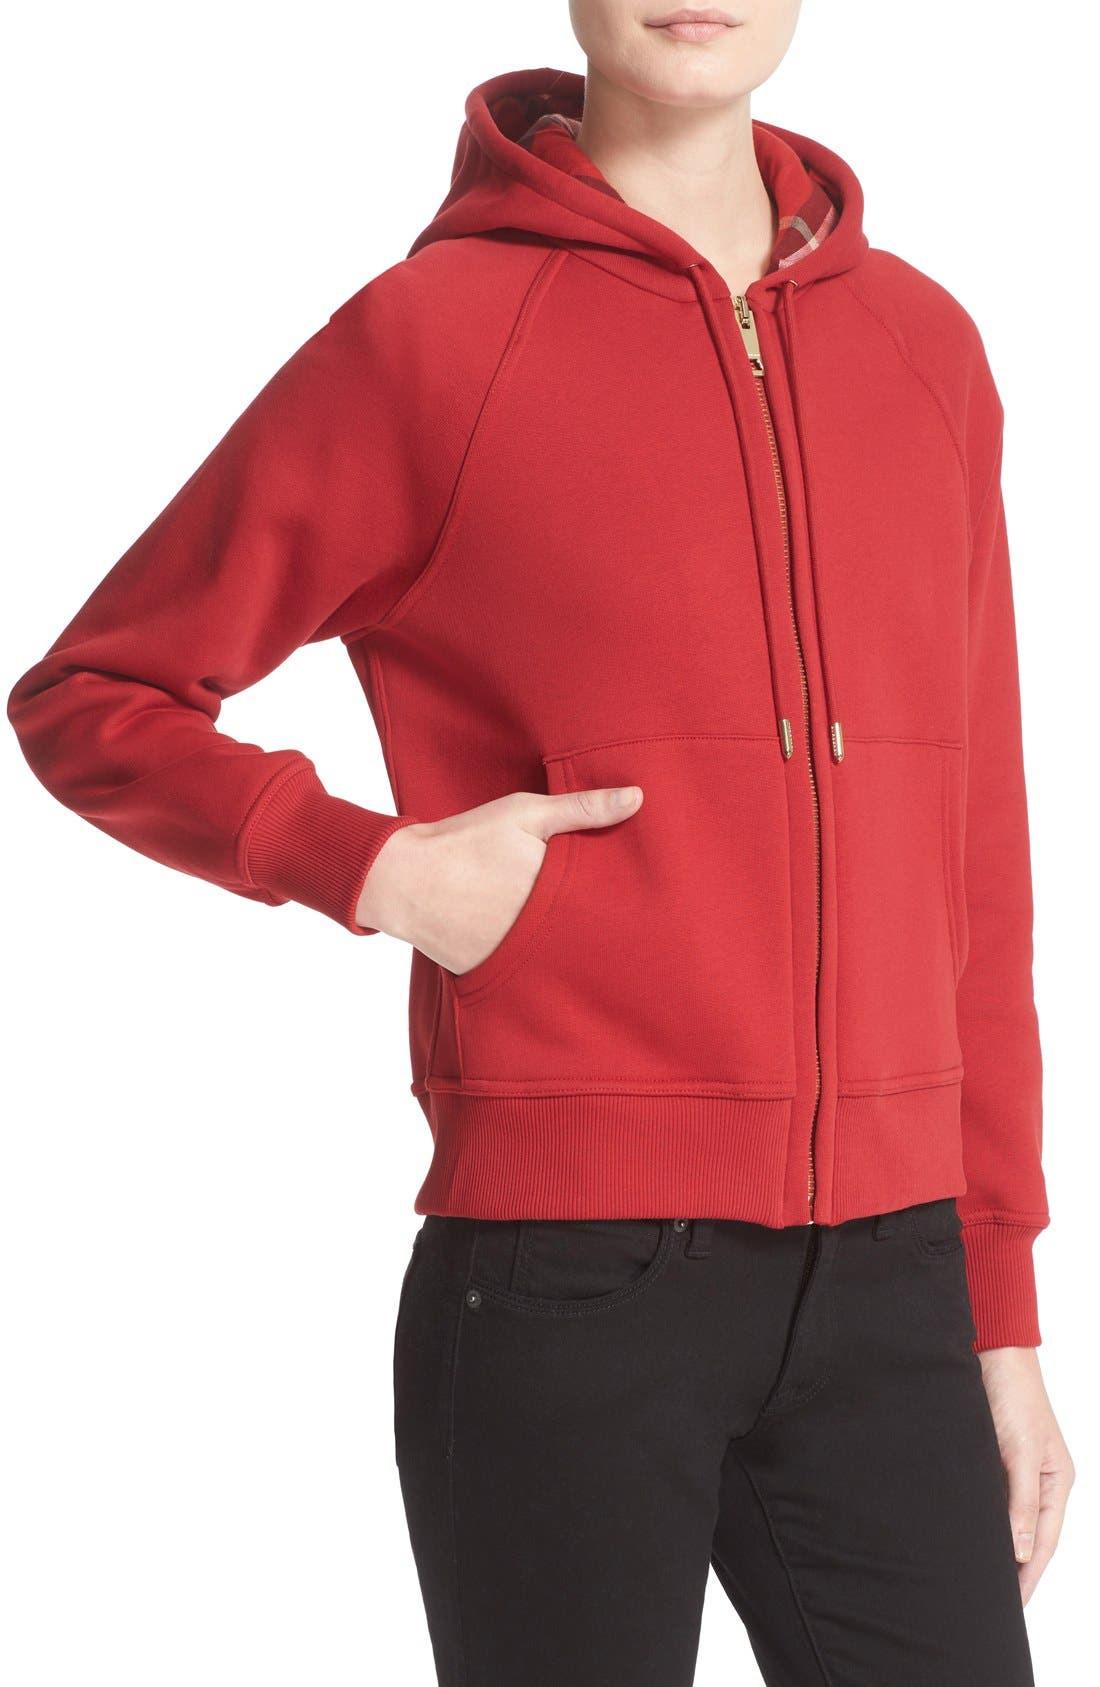 Check Print Hoodie,                             Alternate thumbnail 9, color,                             PARADE RED